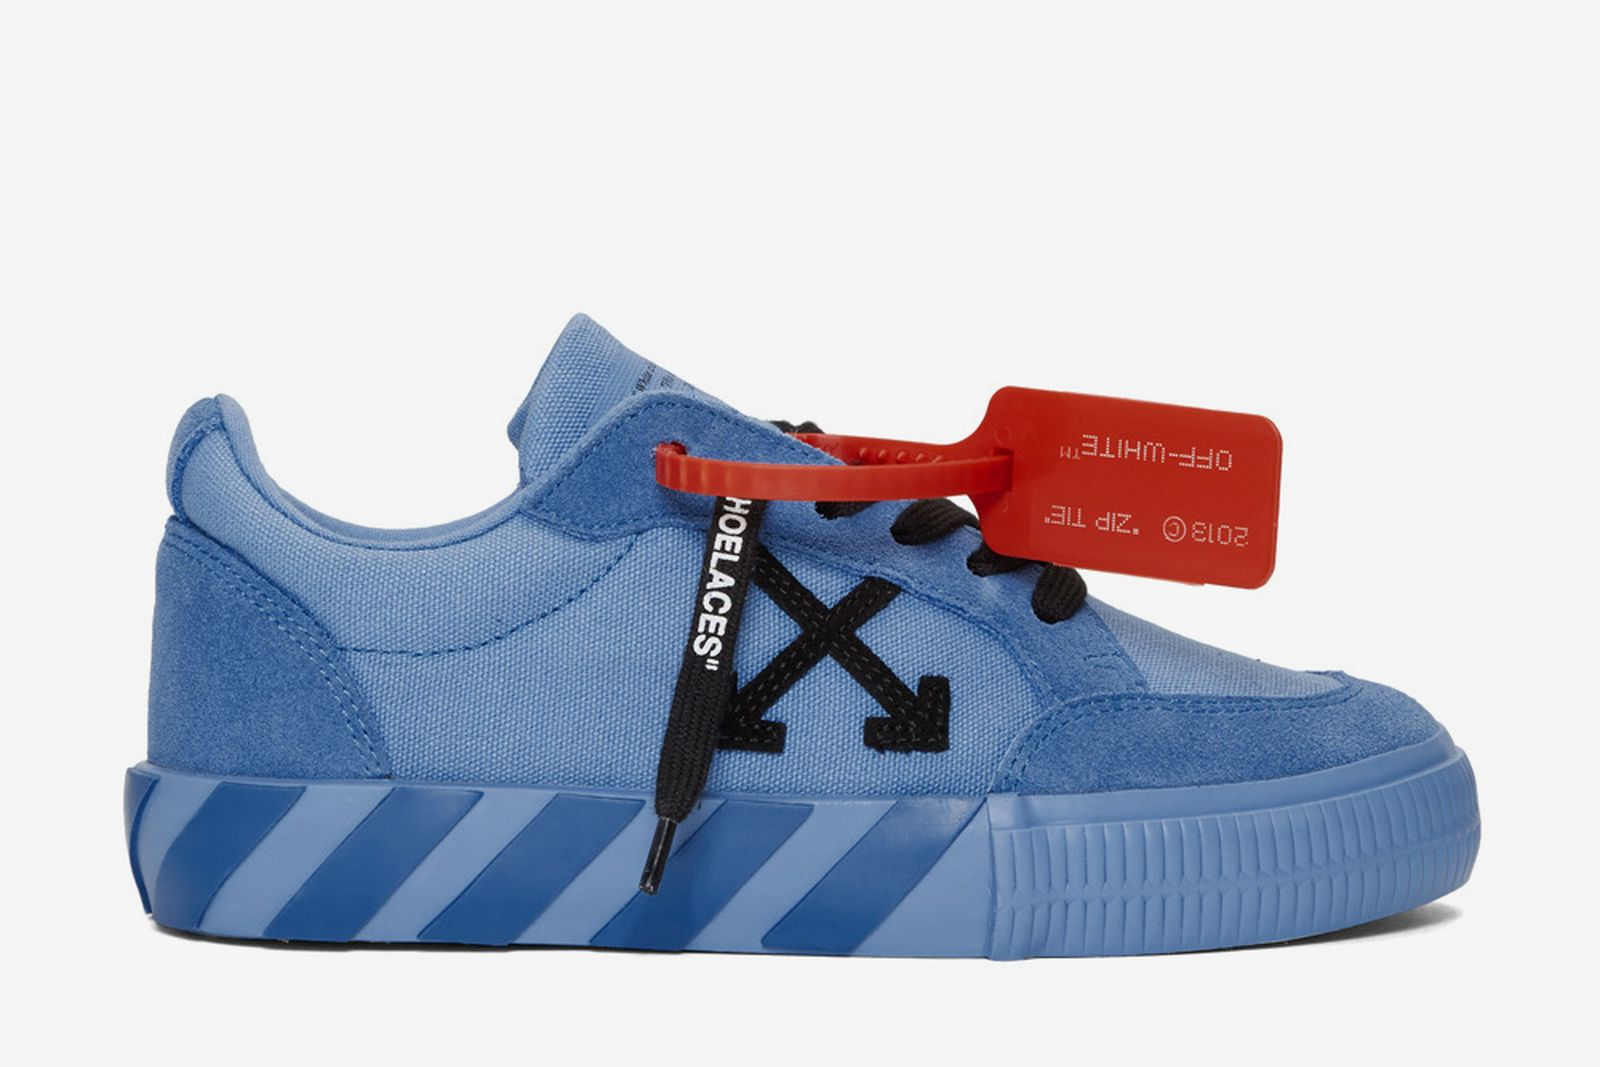 off white vulcanized low ssense exclusive release date price OFF-WHITE c/o Virgil Abloh